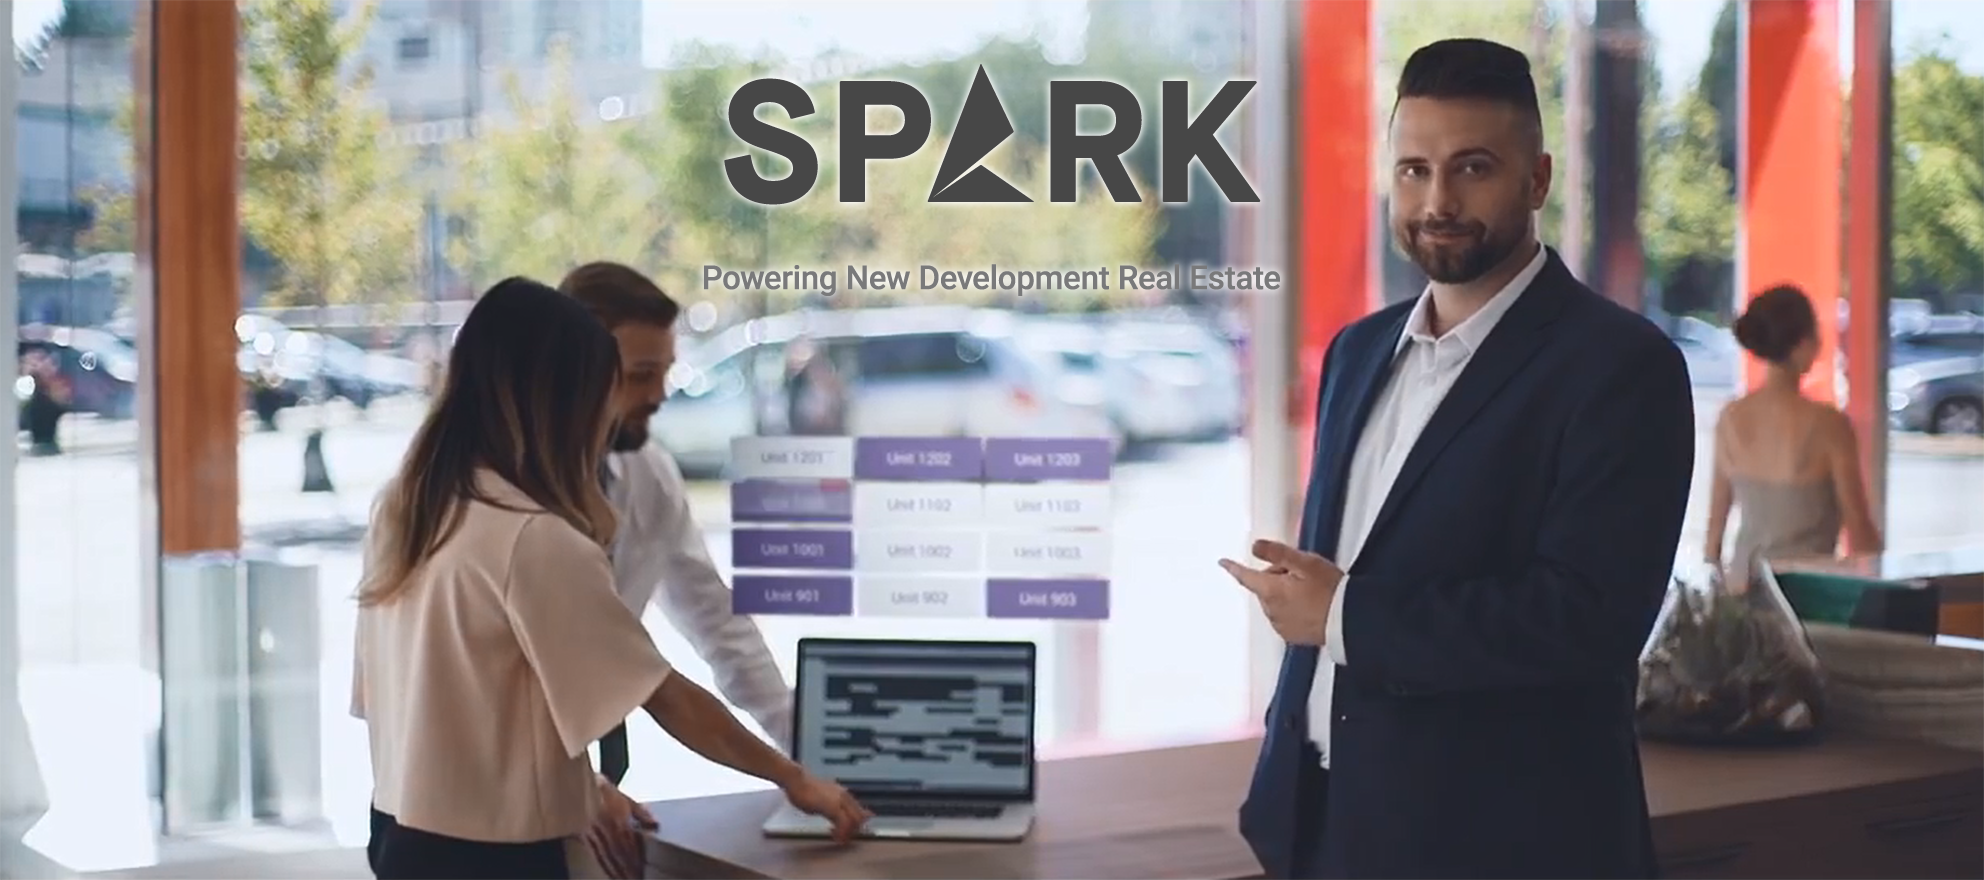 Spark New Development Real Estate Sales Software